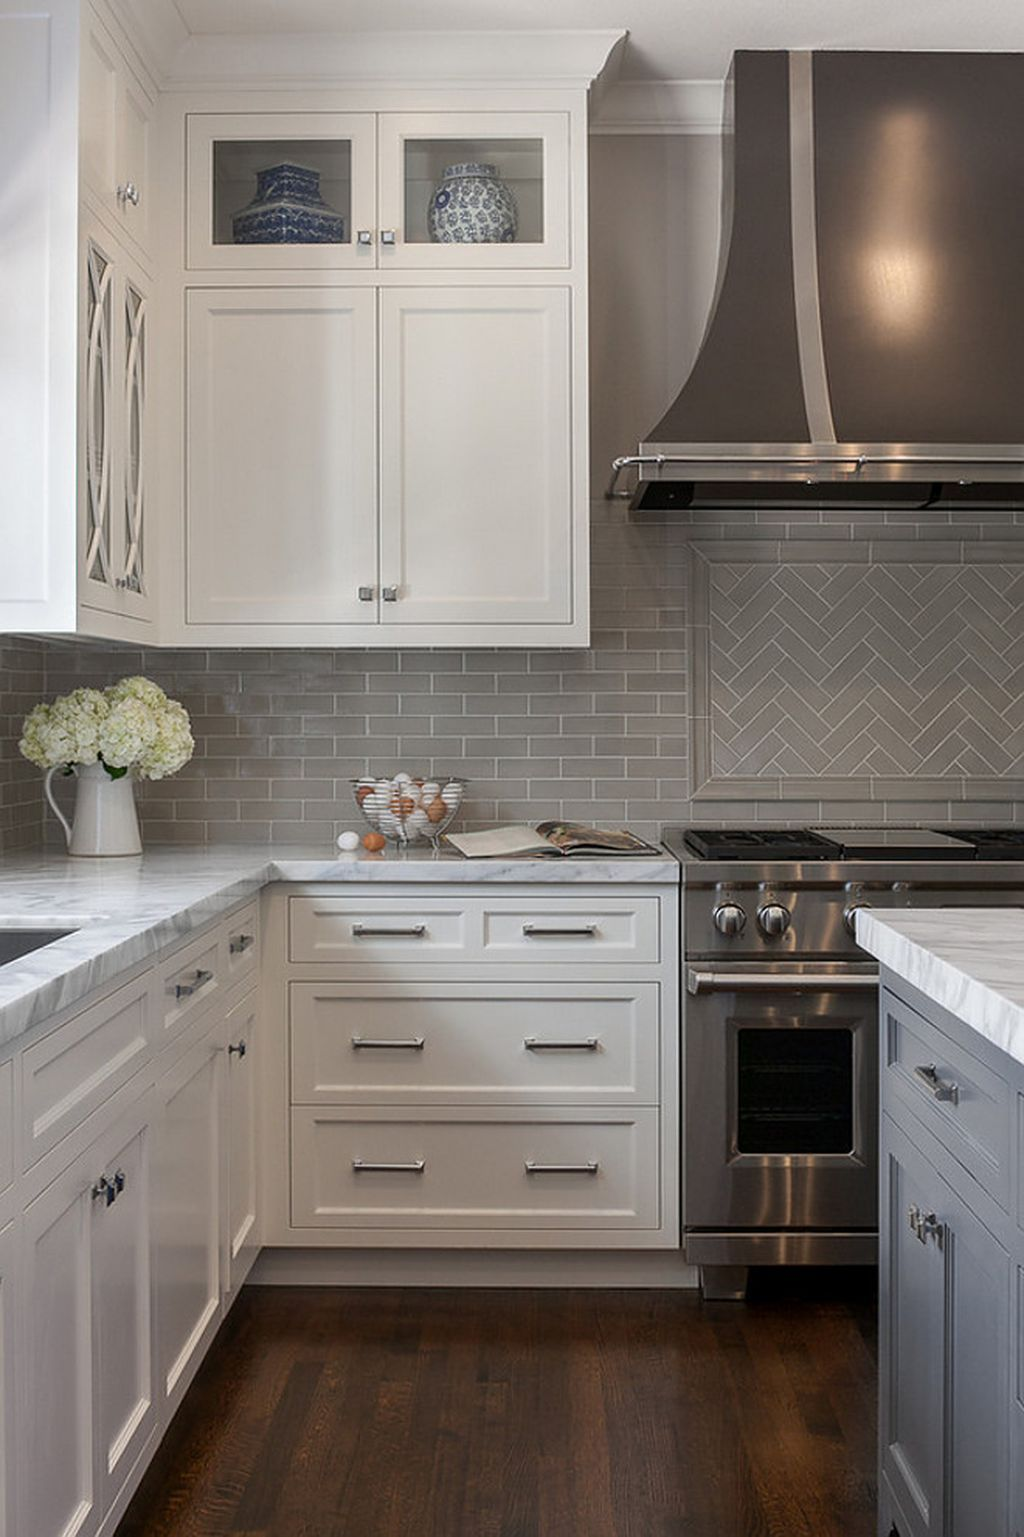 Incredible Kitchen Backsplash with White Cabinet Ideas  32    Dream     Incredible Kitchen Backsplash with White Cabinet Ideas  32